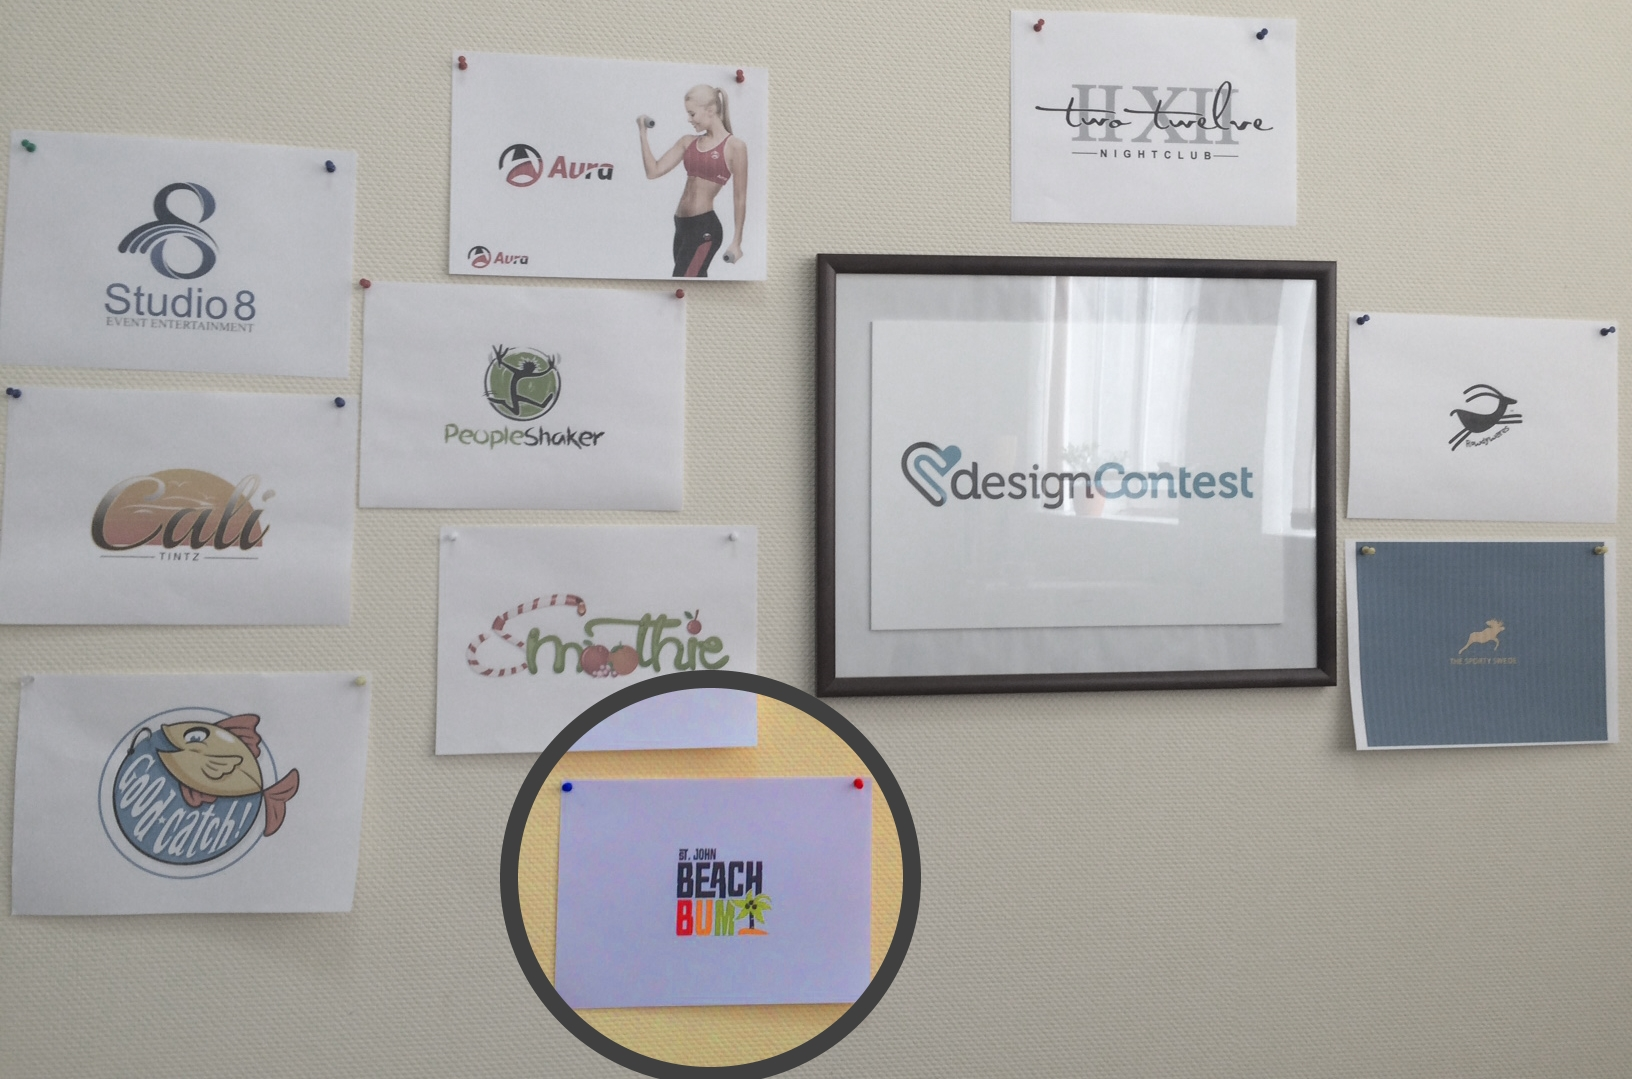 Decorating office poll #11